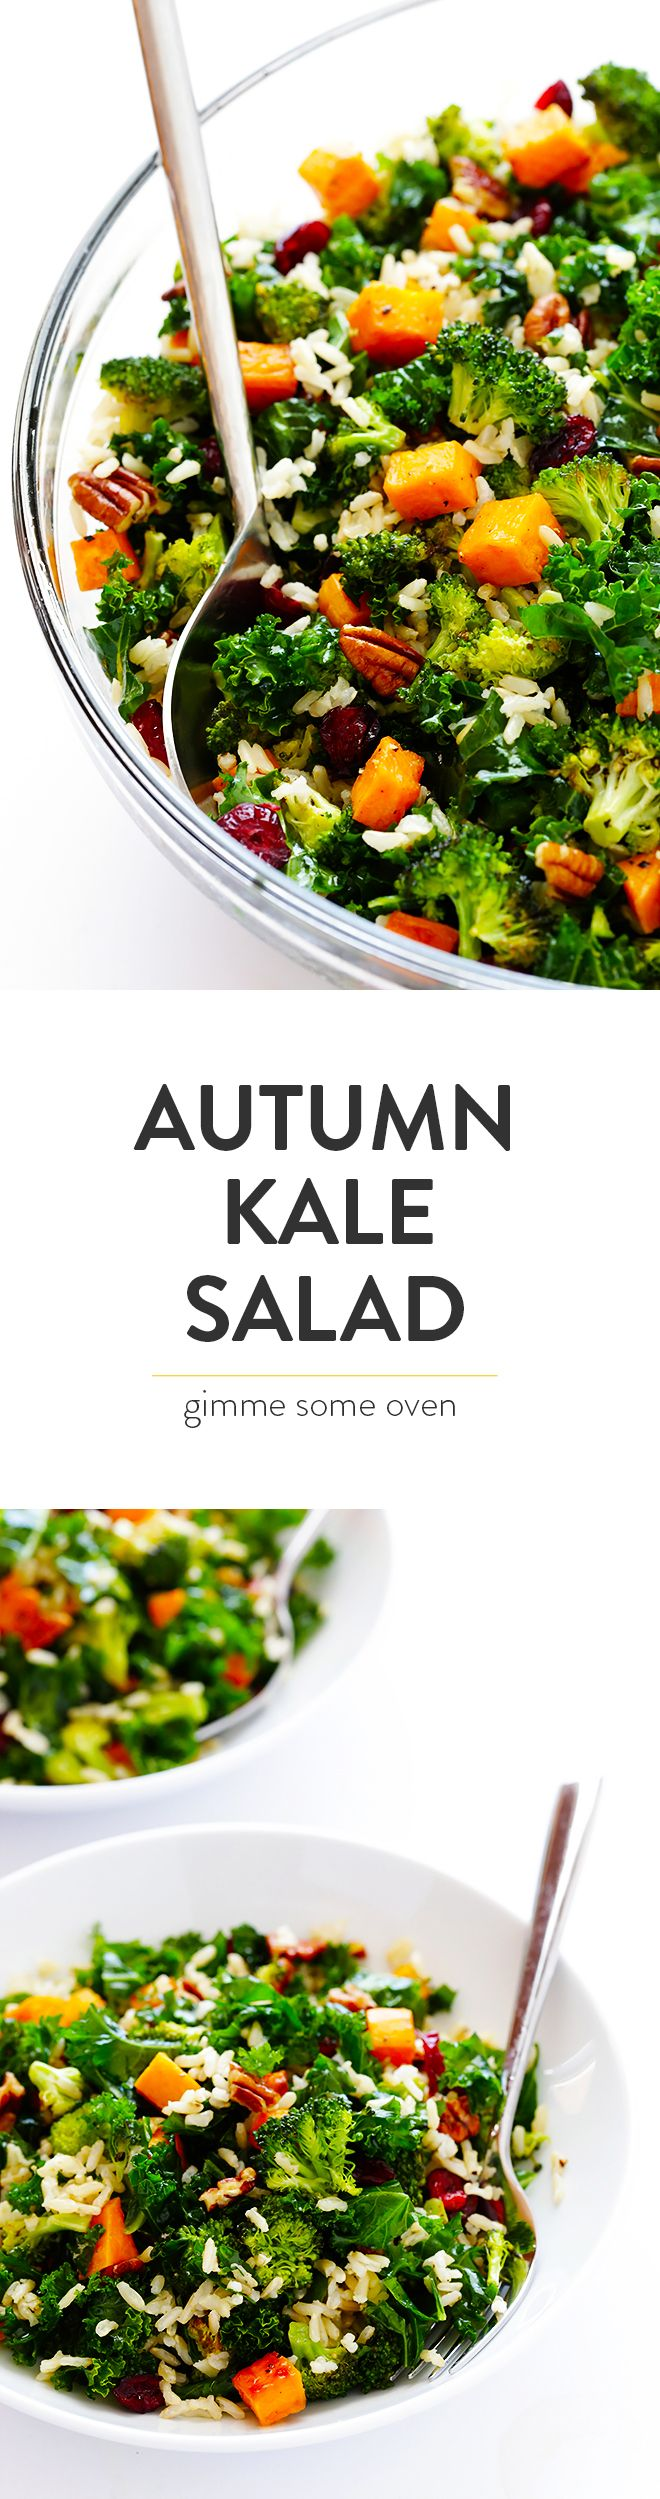 Autumn Kale Salad with Sweet Potatoes, Broccoli and Brown Rice -- a hearty, easy dinner made with my favorite fall flavors!   gimmesomeoven.com